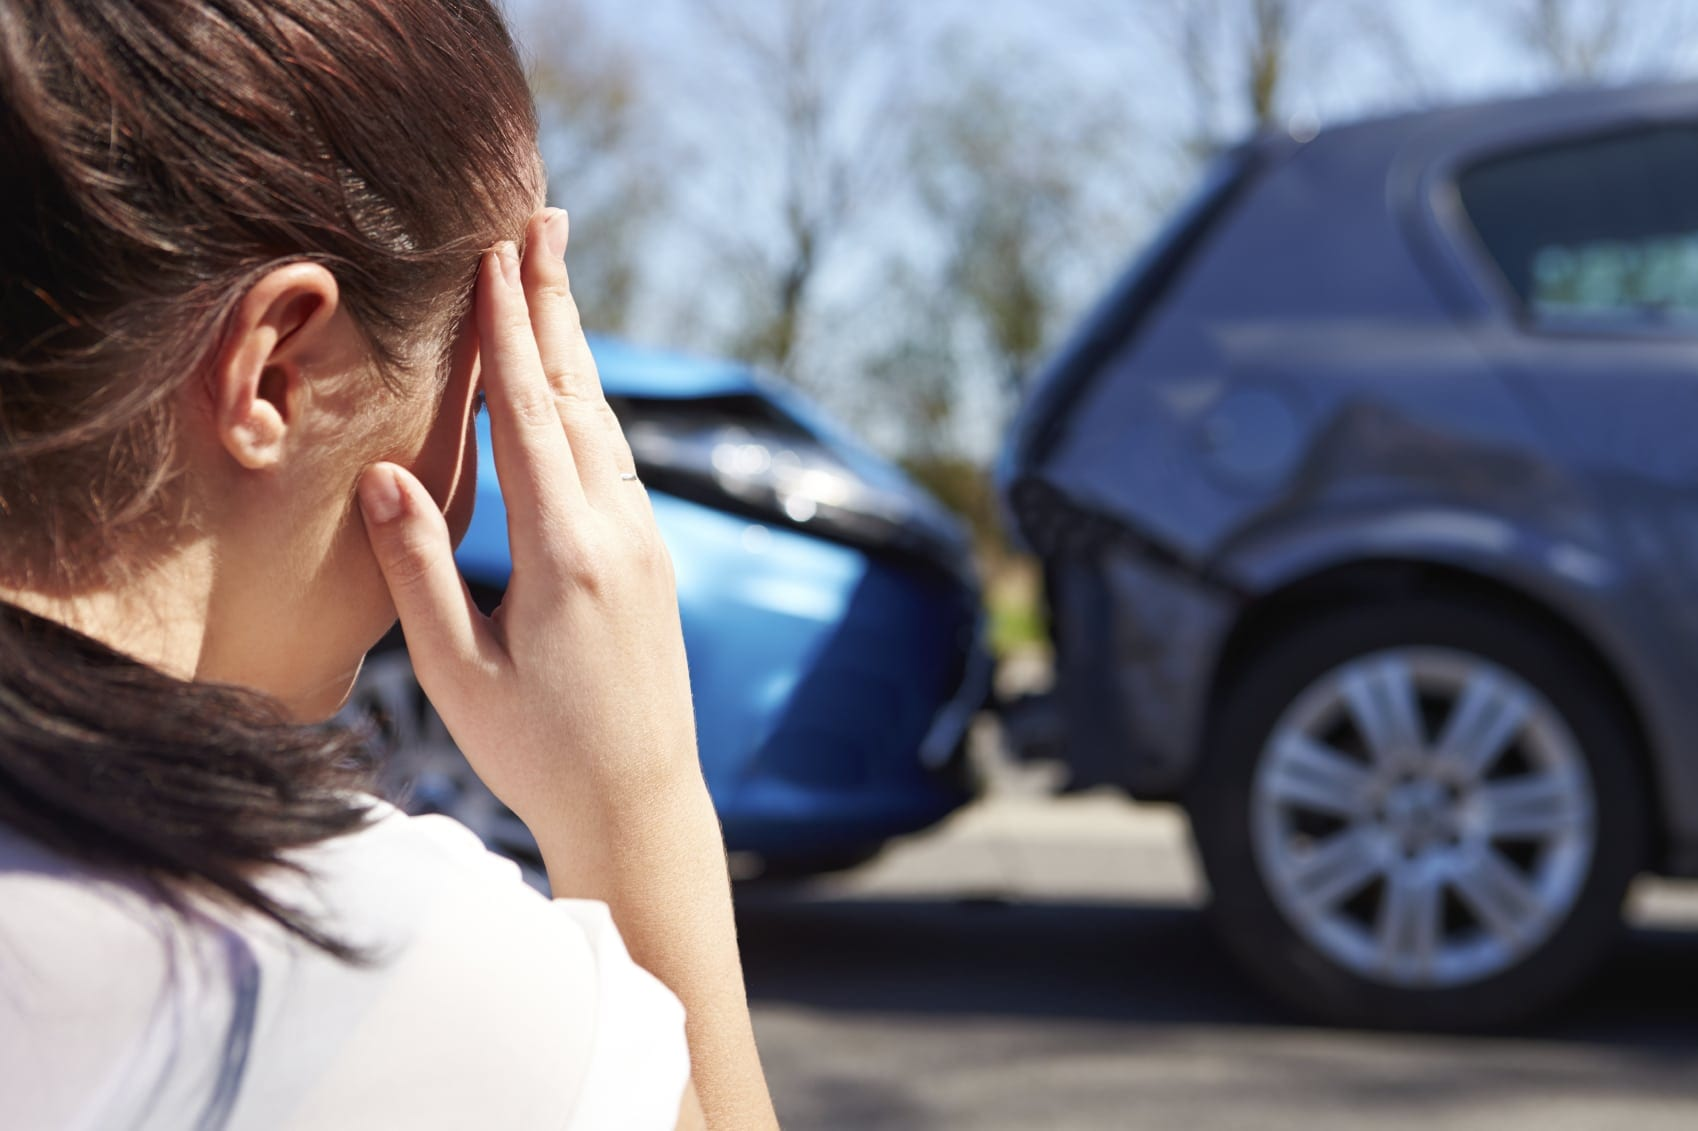 Young Woman In Distress After Car Accident Stock Photo